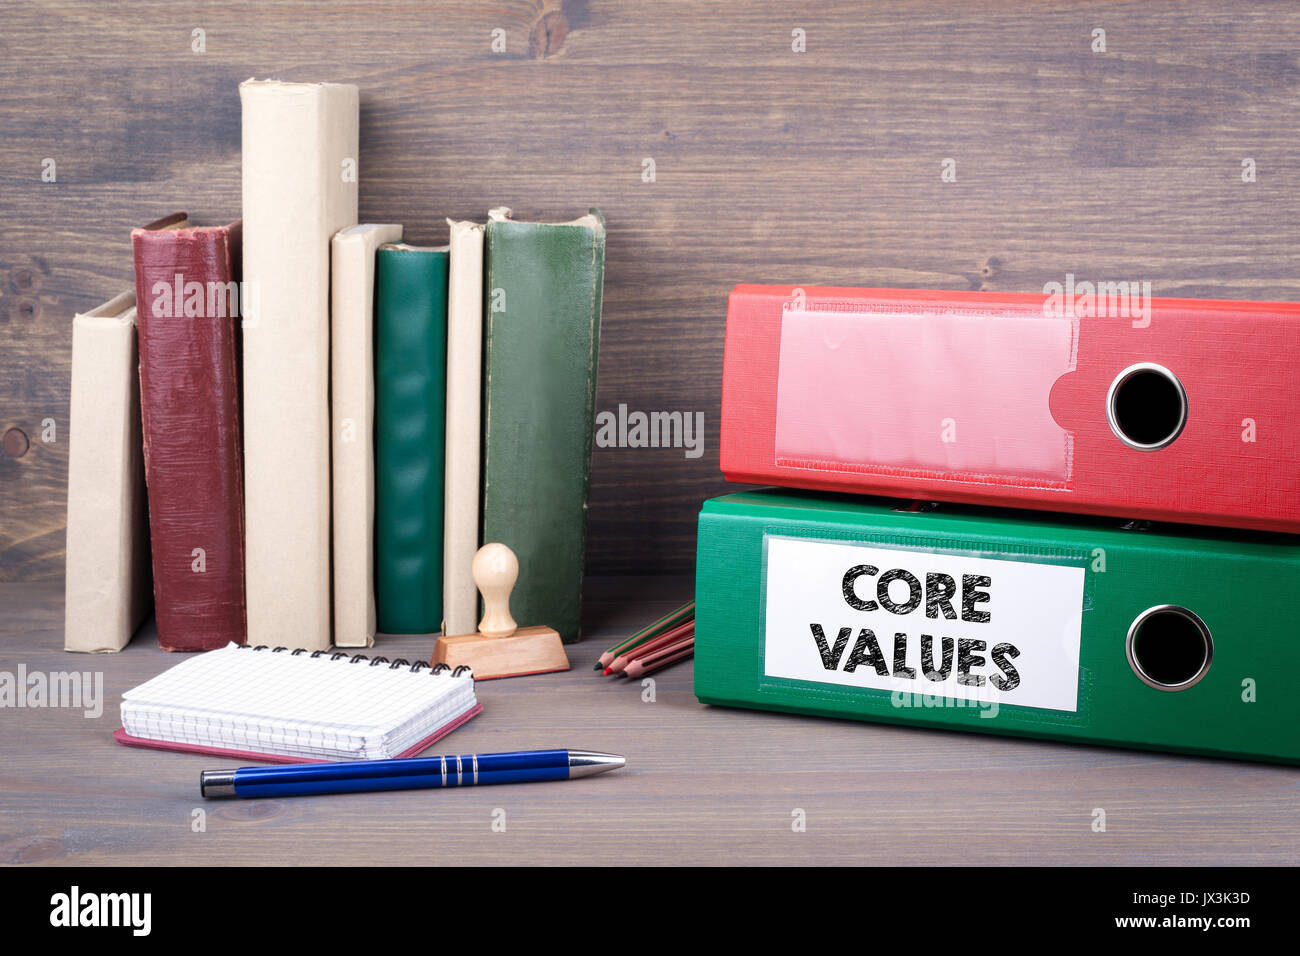 Core Values. Binder on desk in the office. Business background. - Stock Image